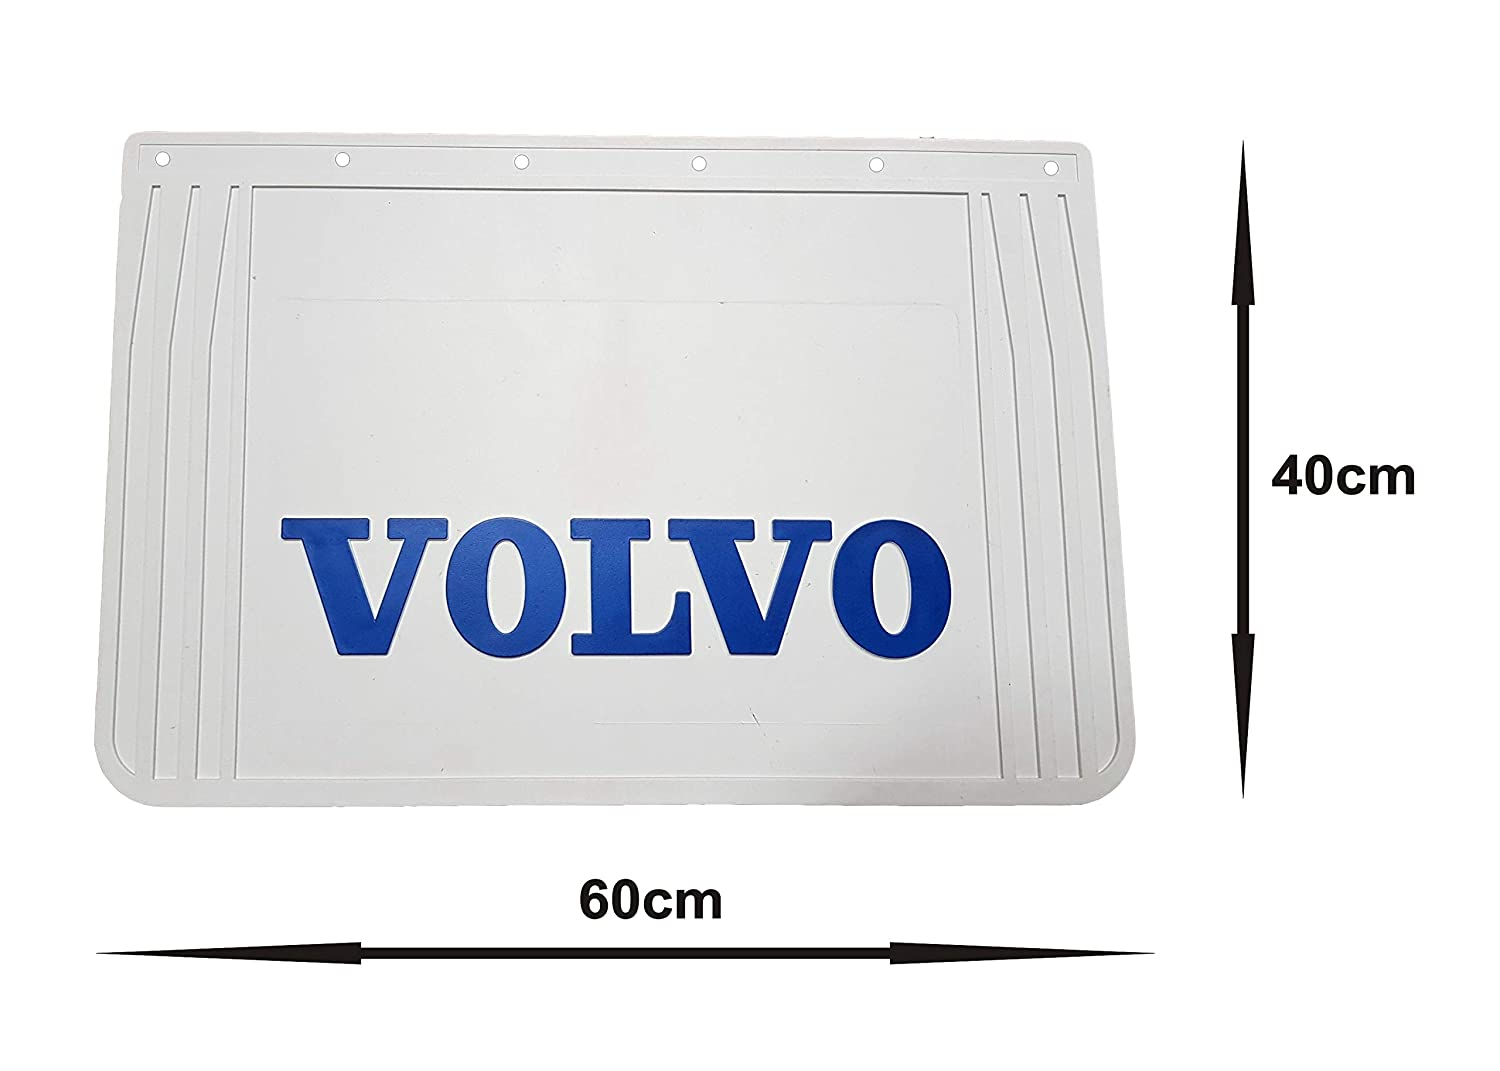 Rubber Rear Mudguards Mud Flaps with White Reflective Inscription for Truck Lorry Trailer Set of 3 Pcs